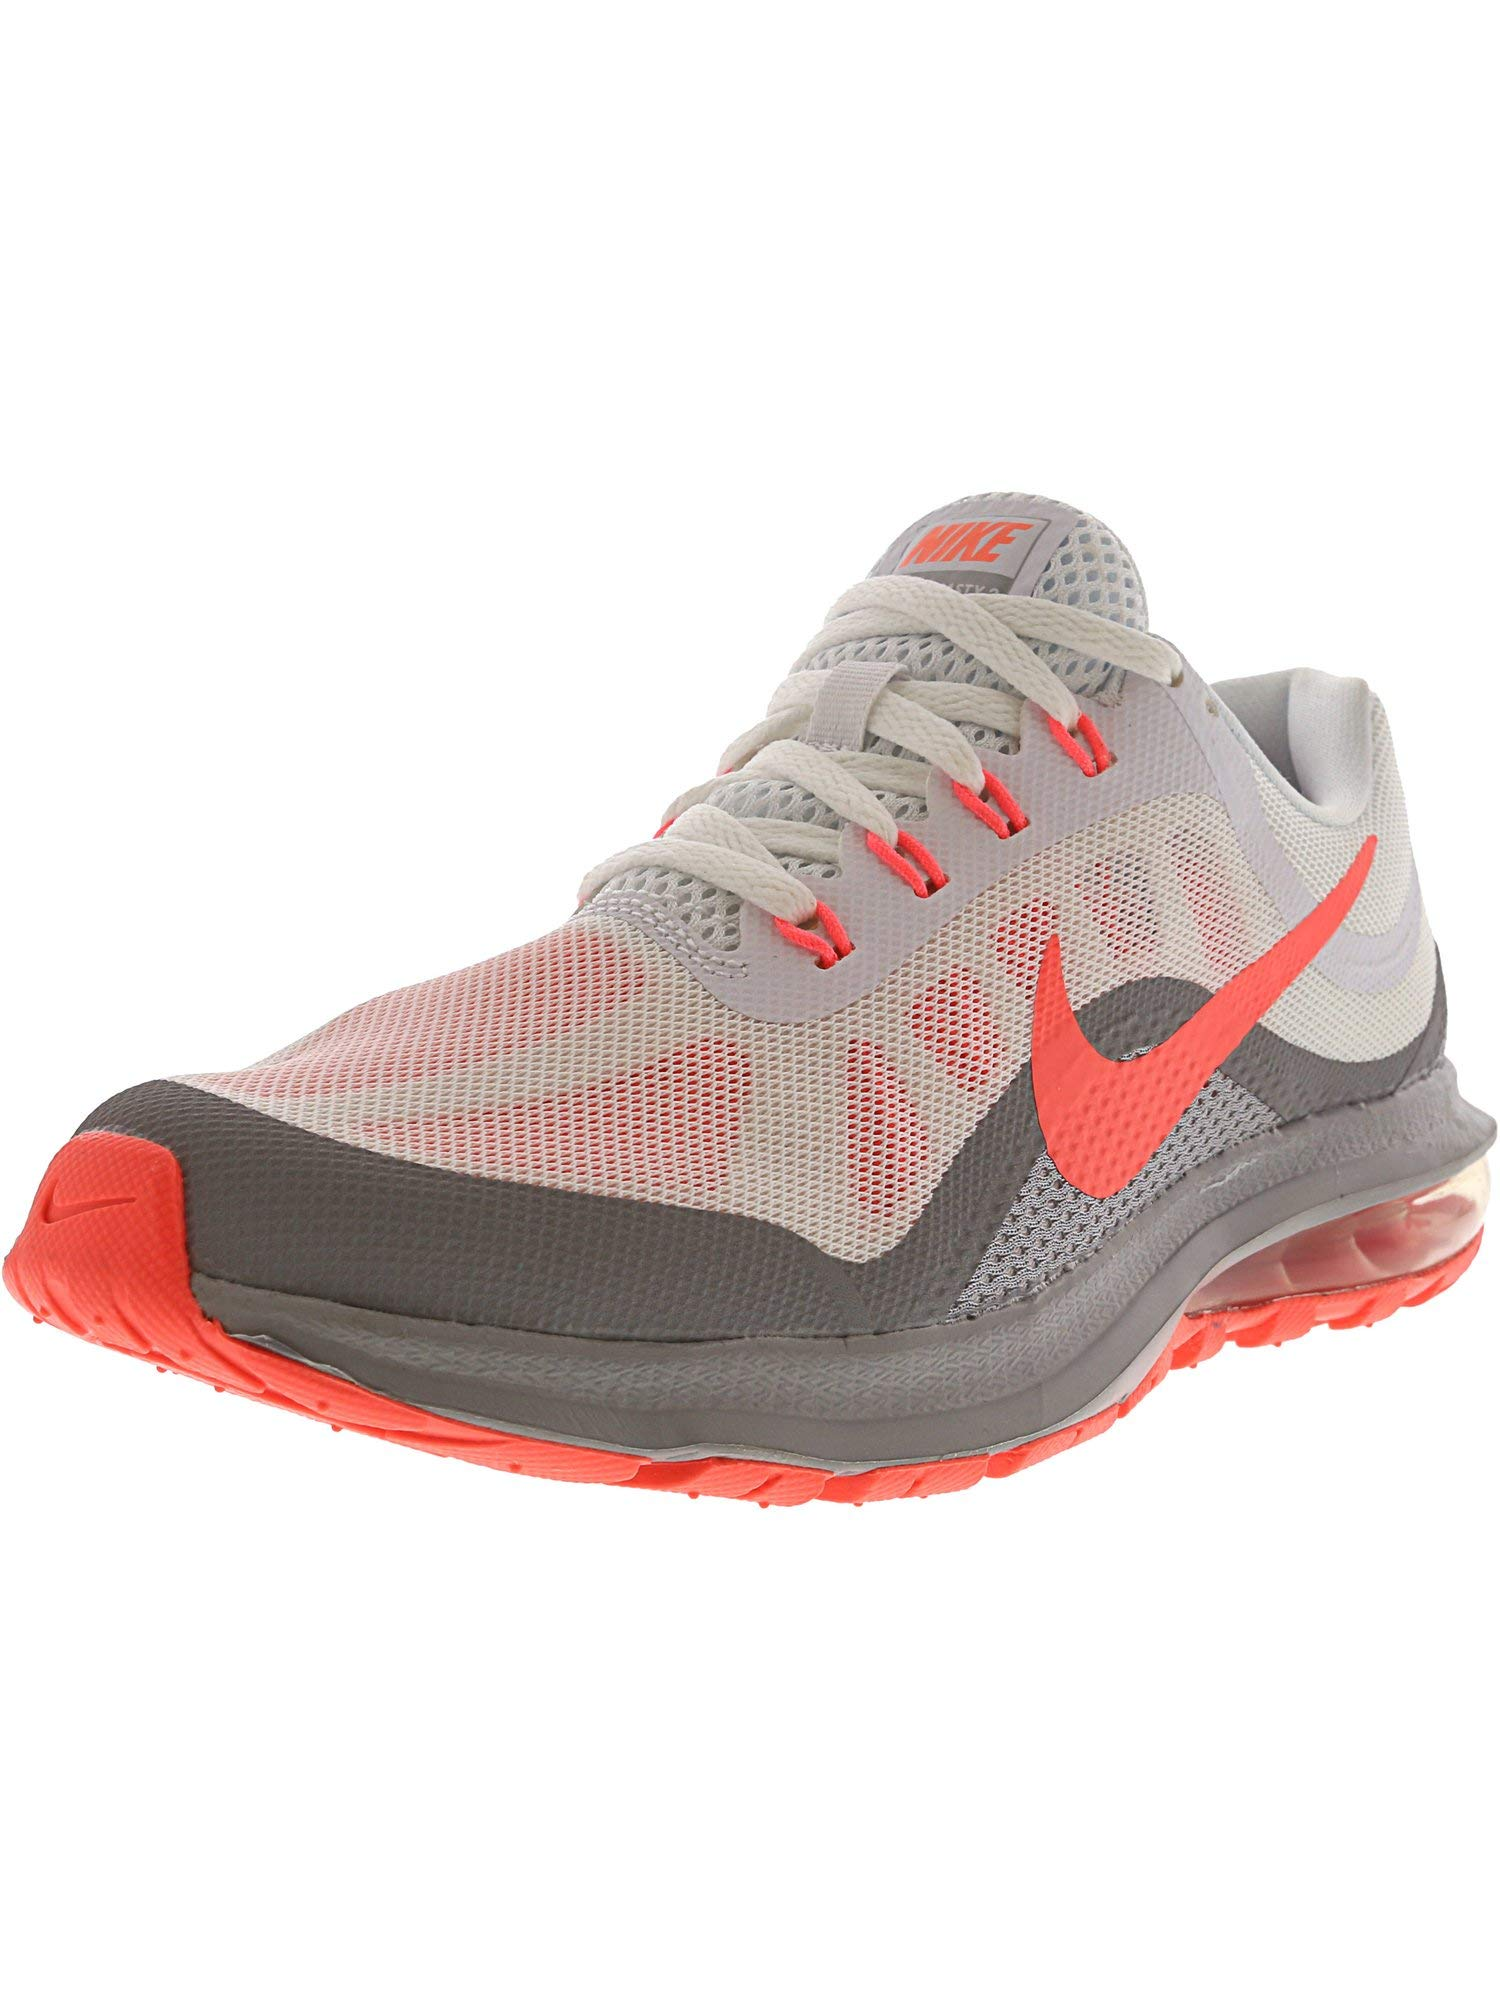 54741701a3a Galleon - Nike Air Max Dynasty 2 Womens Running Shoes (8 B US)